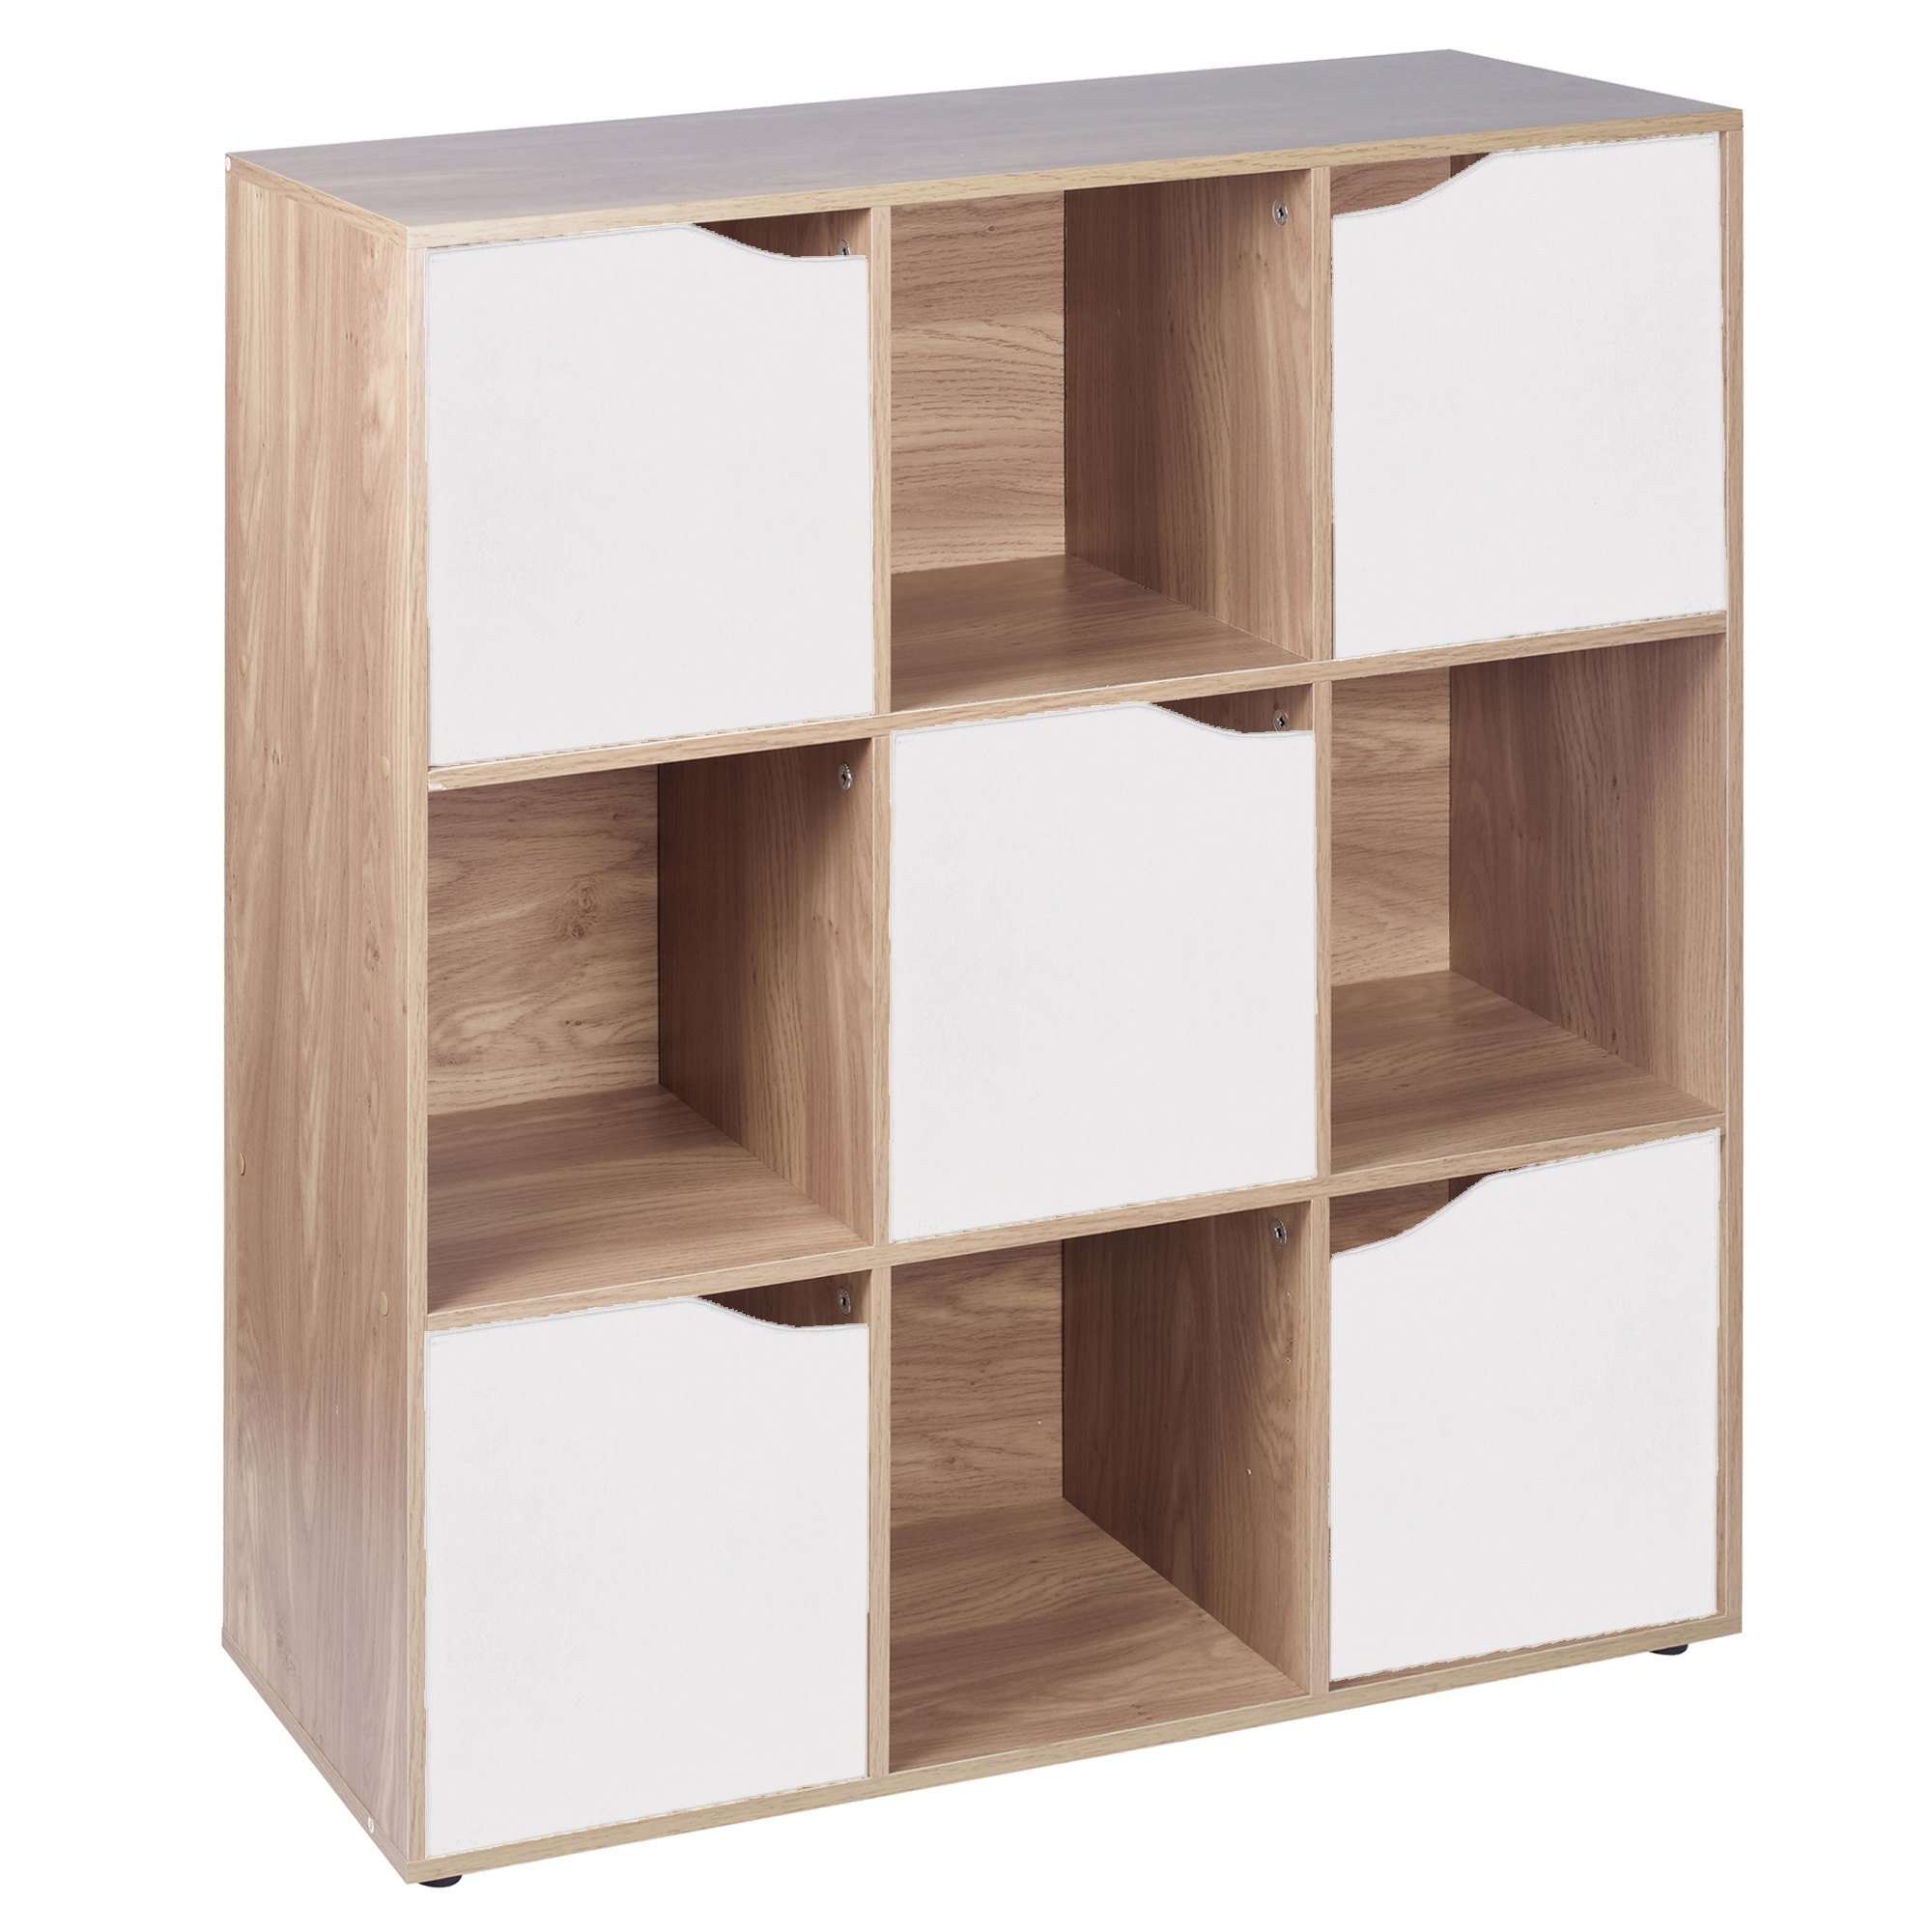 9 cube oak wooden bookcase shelving display modular. Black Bedroom Furniture Sets. Home Design Ideas